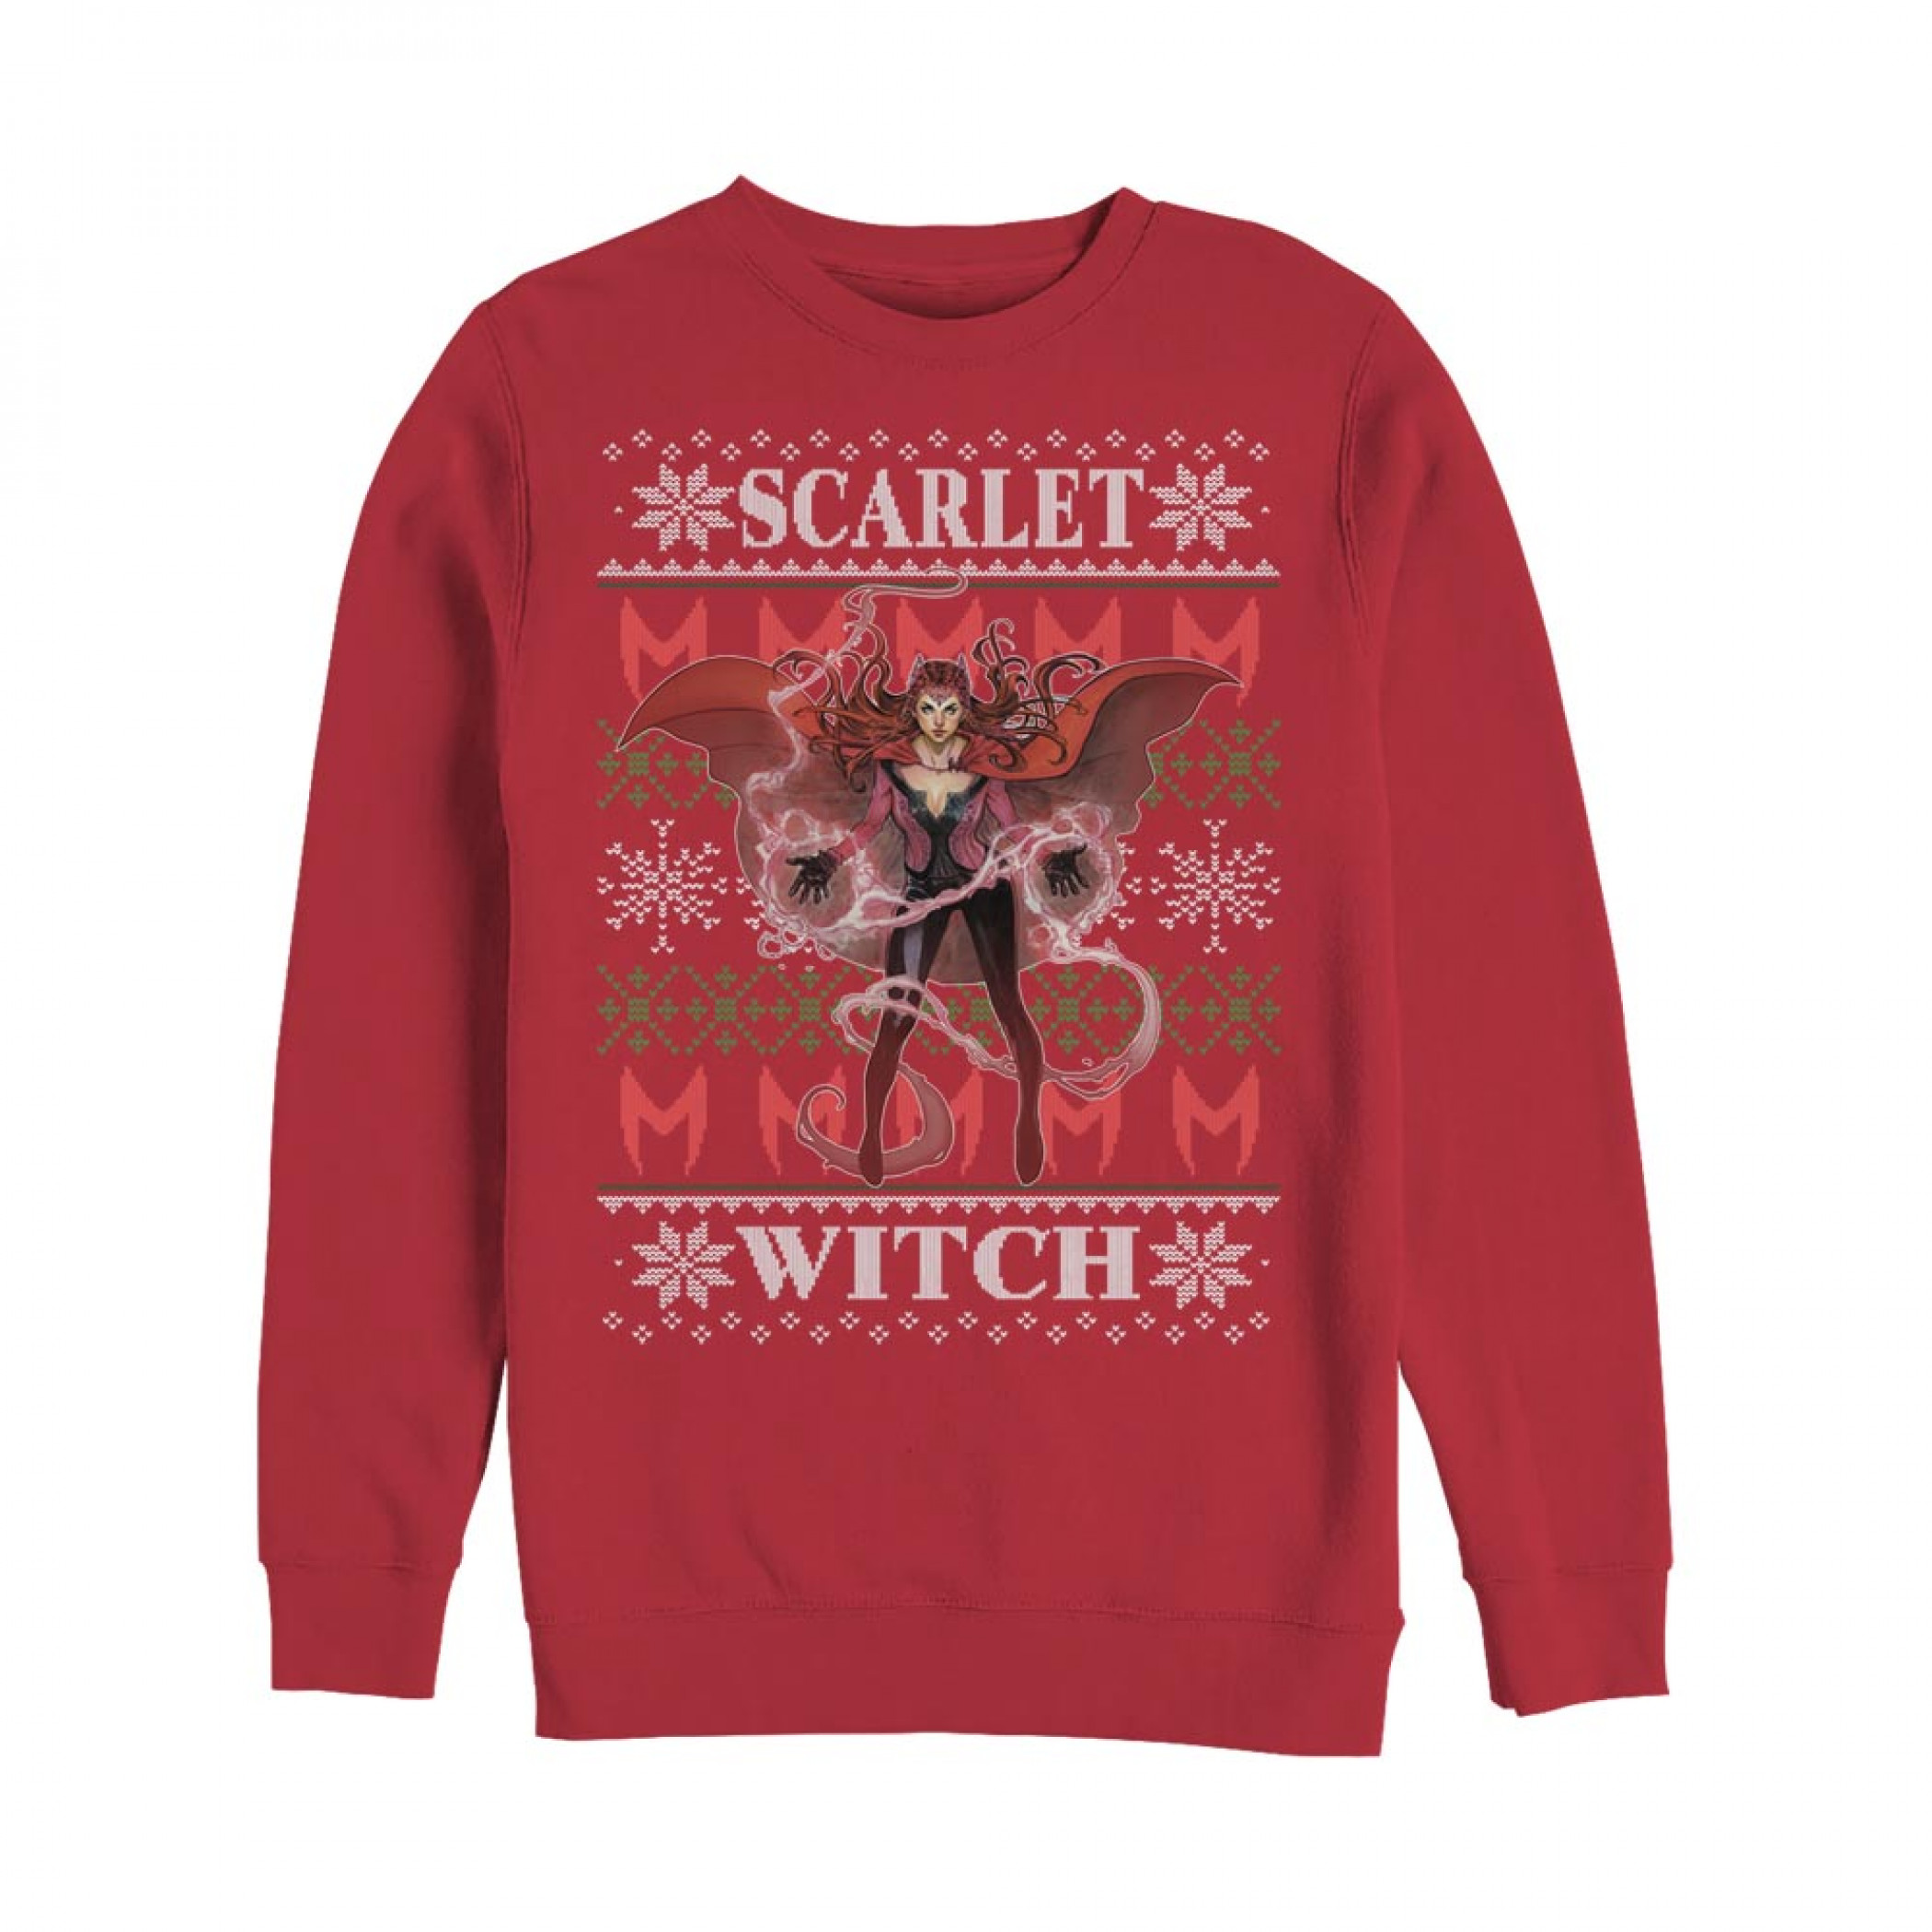 The Scarlet Witch Ugly Christmas Sweatshirt